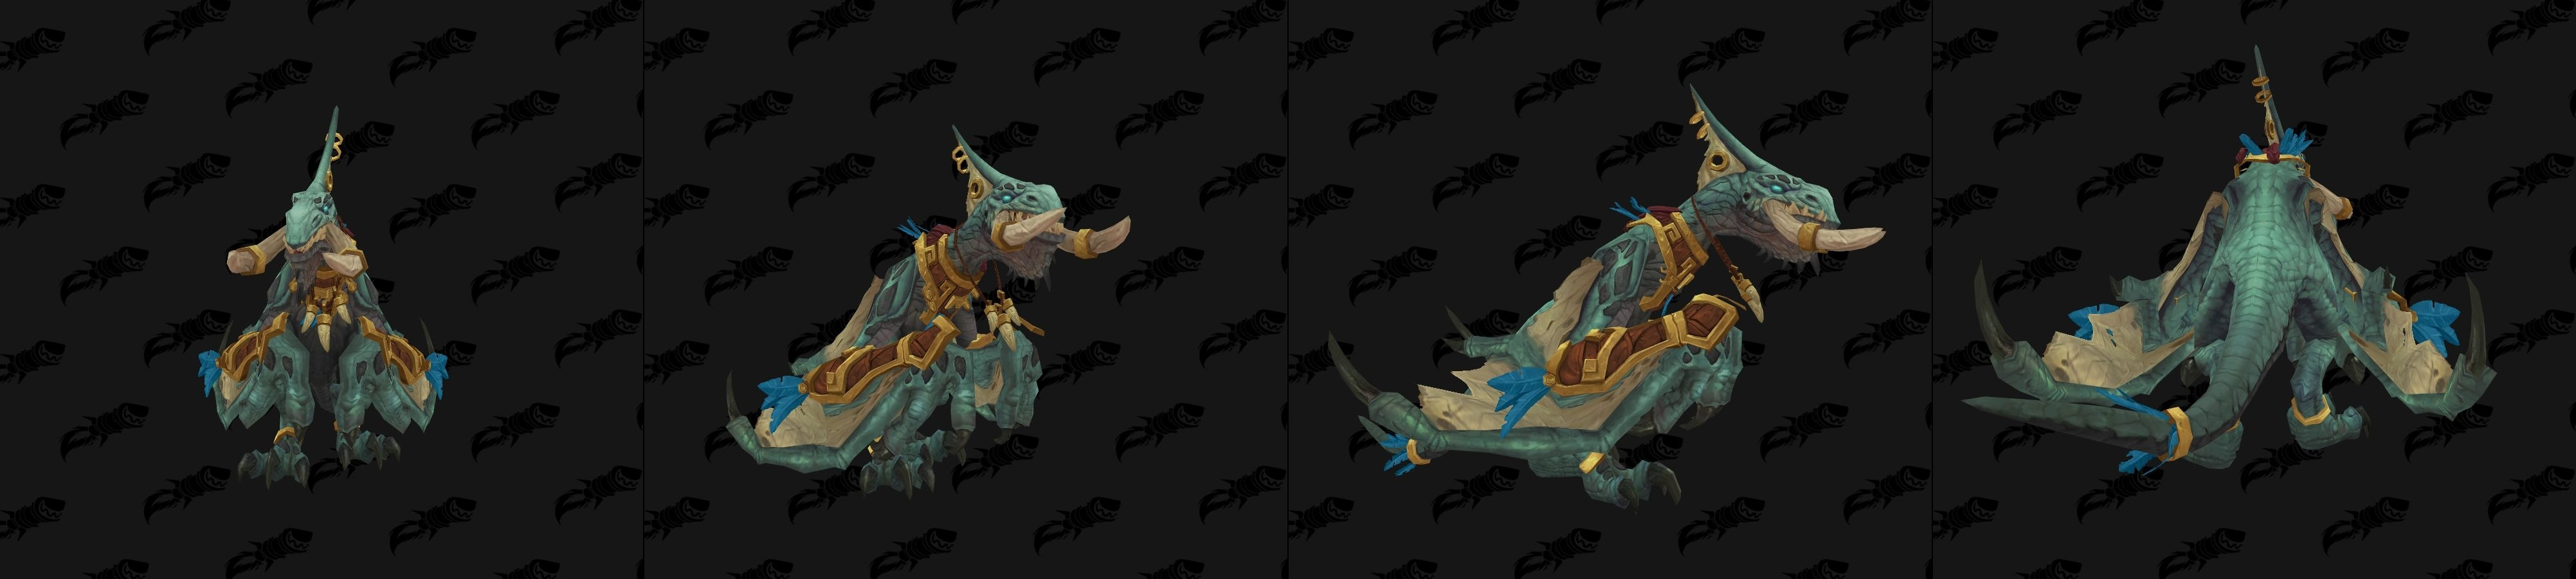 WoW Zandalari Fluggestalt